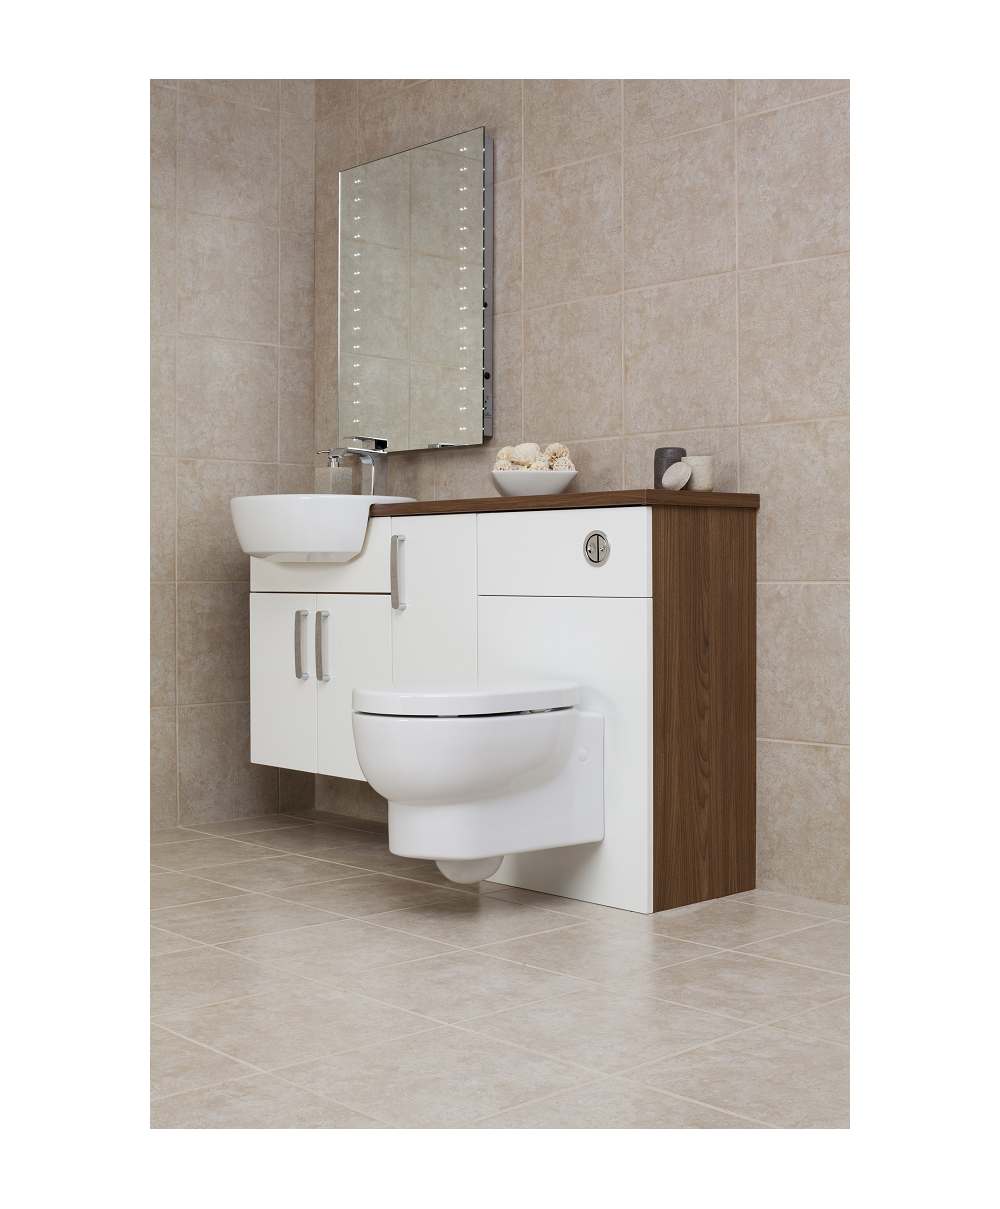 Geberit duofix frame for wall hung wc h82 with omega cistern 12cm -  Geberit Duofix Frame For Wall Hung Wc H79 With Concealed Cistern For Low